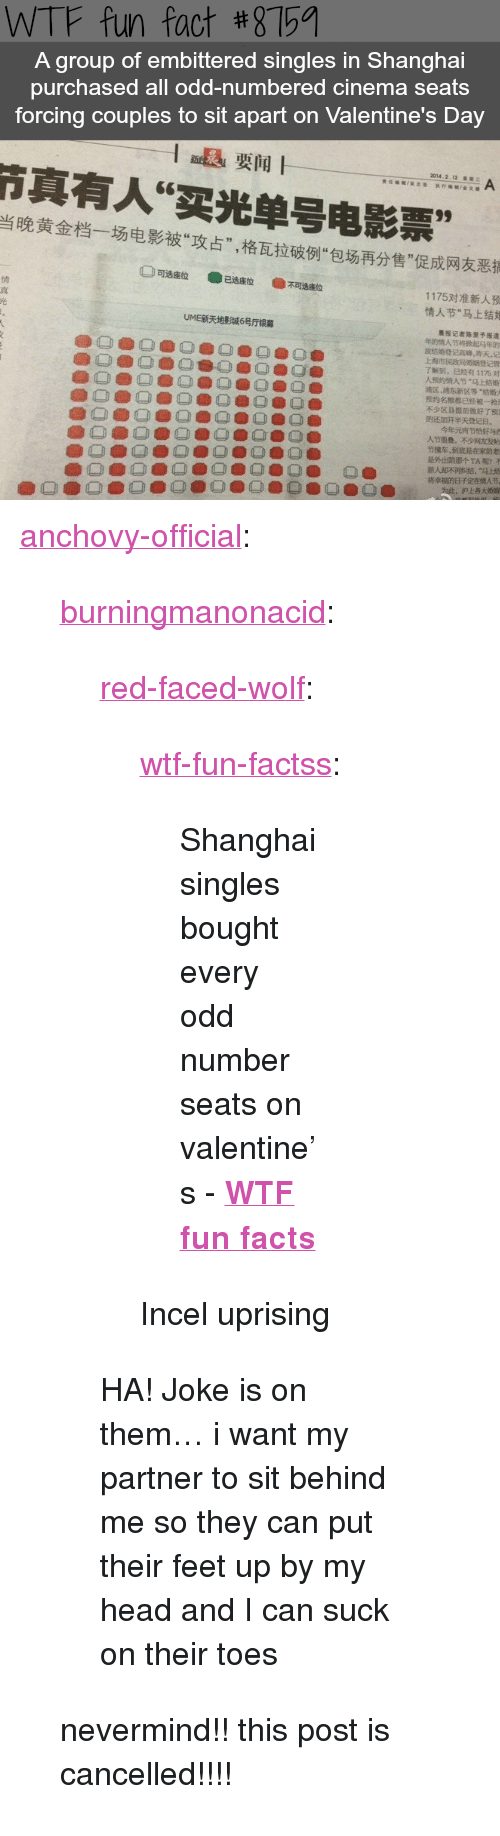 """shanghai: WTF fun fact #8759  A group of embittered singles in Shanghai  purchased all odd-numbered cinema seats  forcing couples to sit apart on Valentine's Day  1退要闻